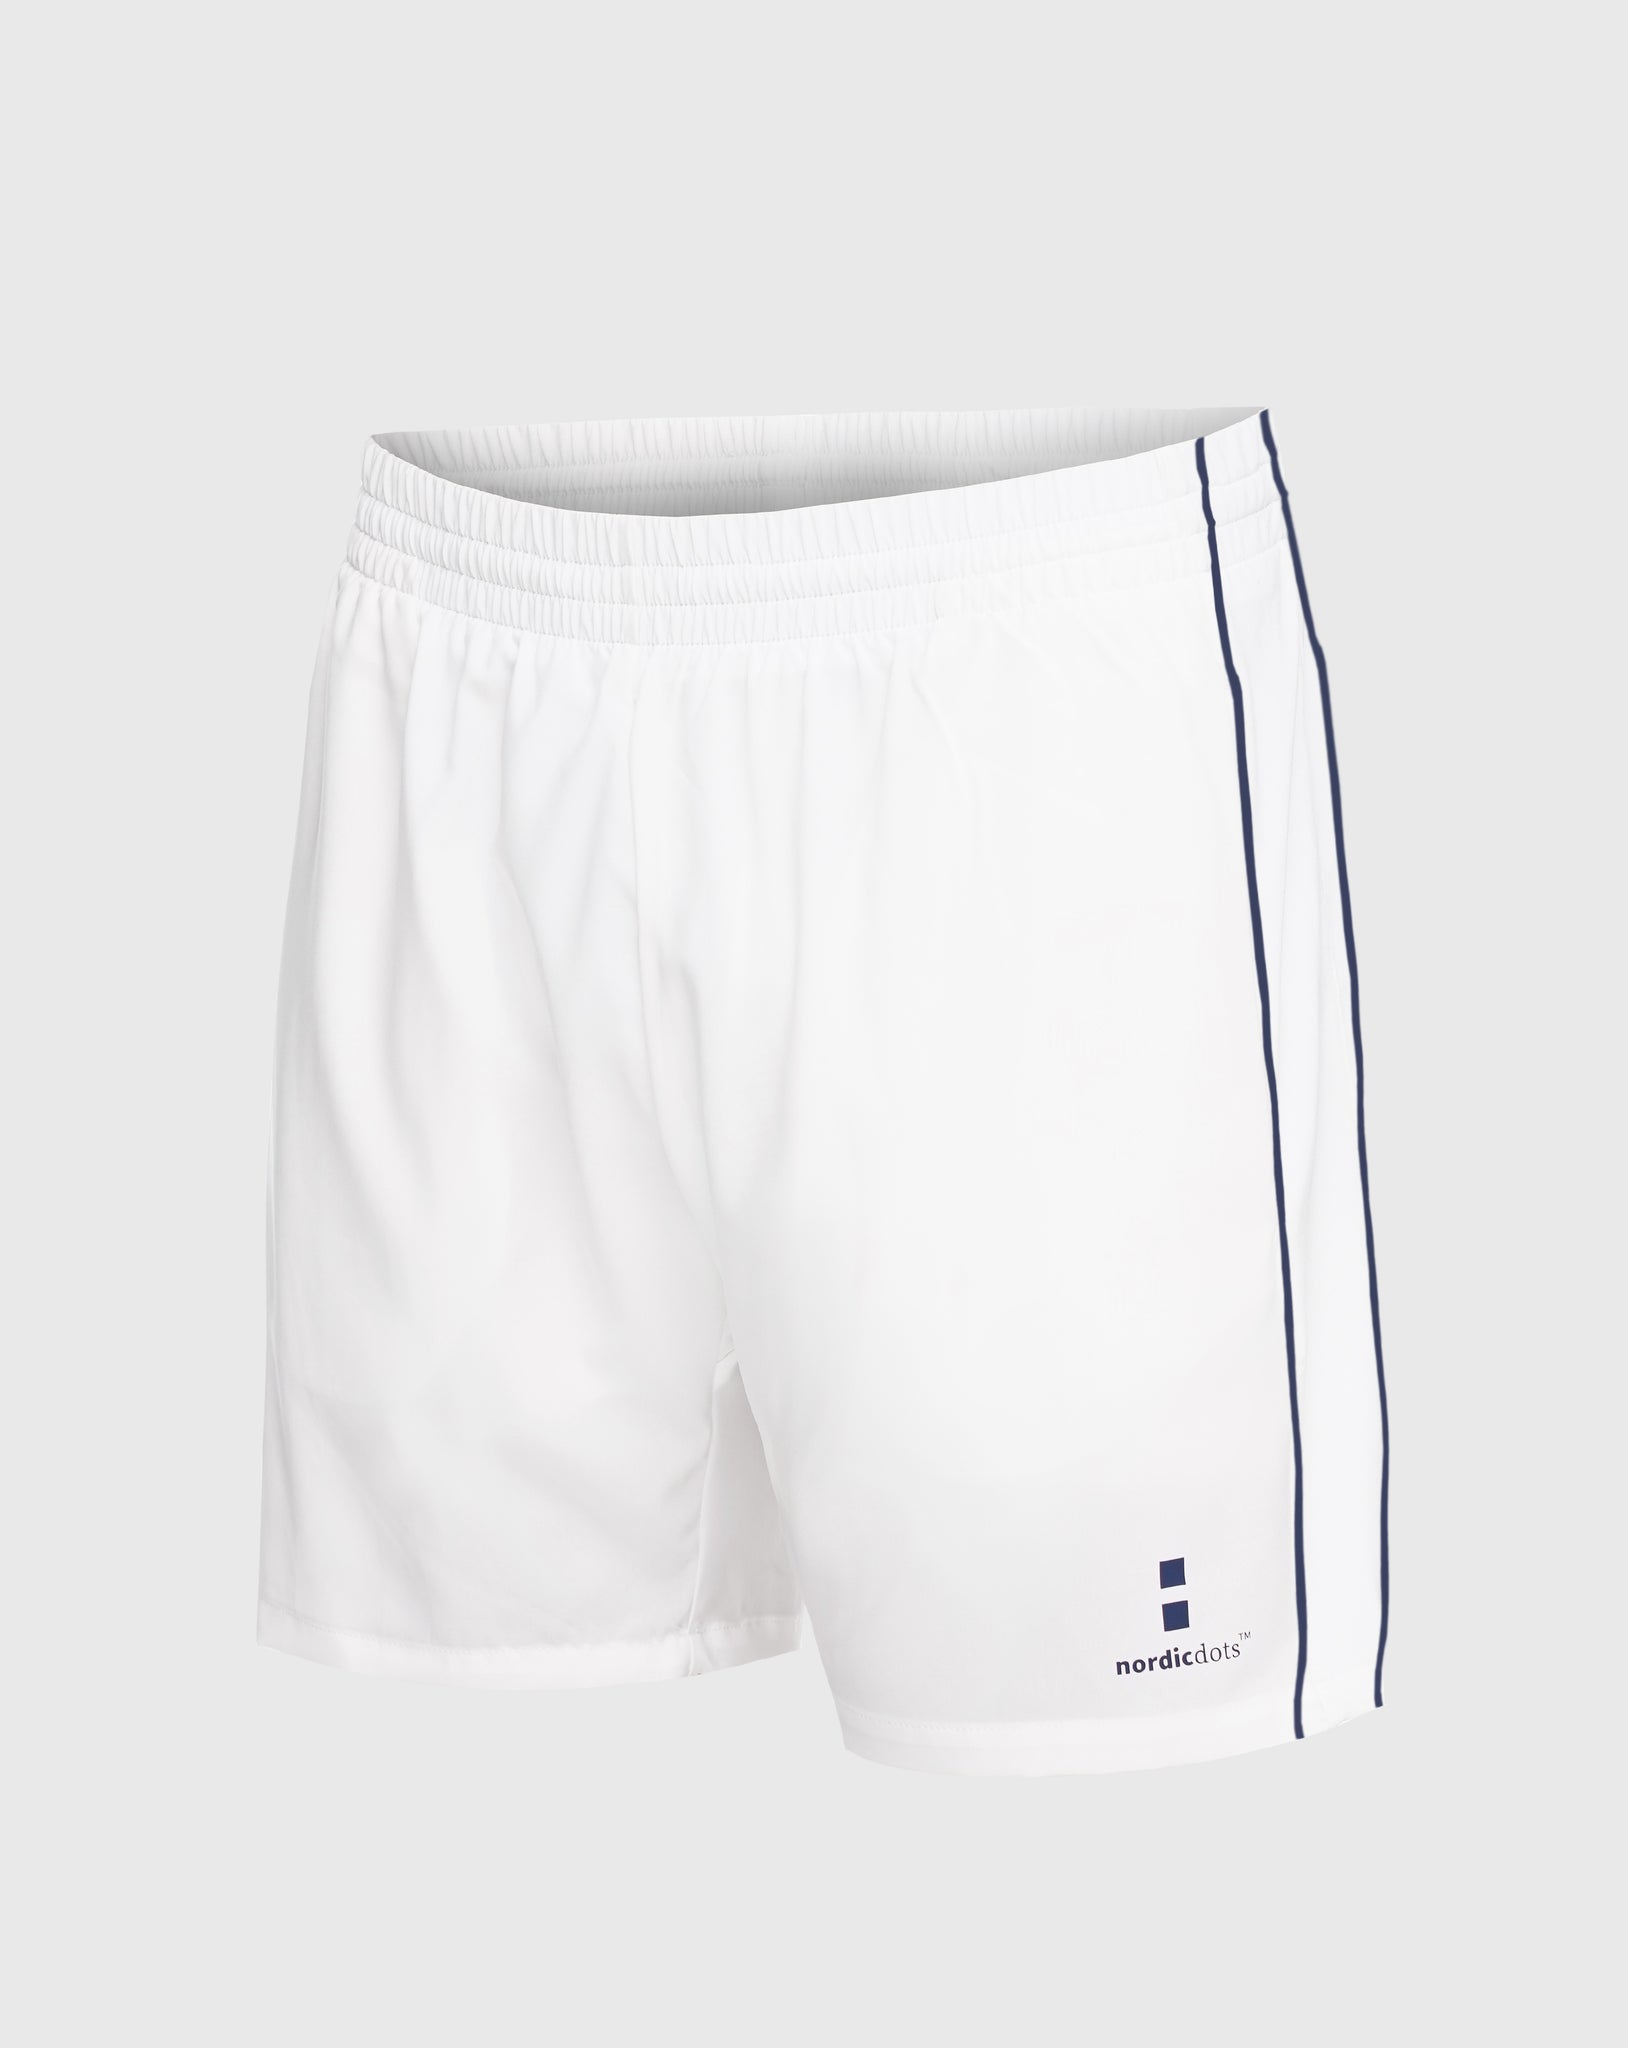 nordicdots white tennis shorts